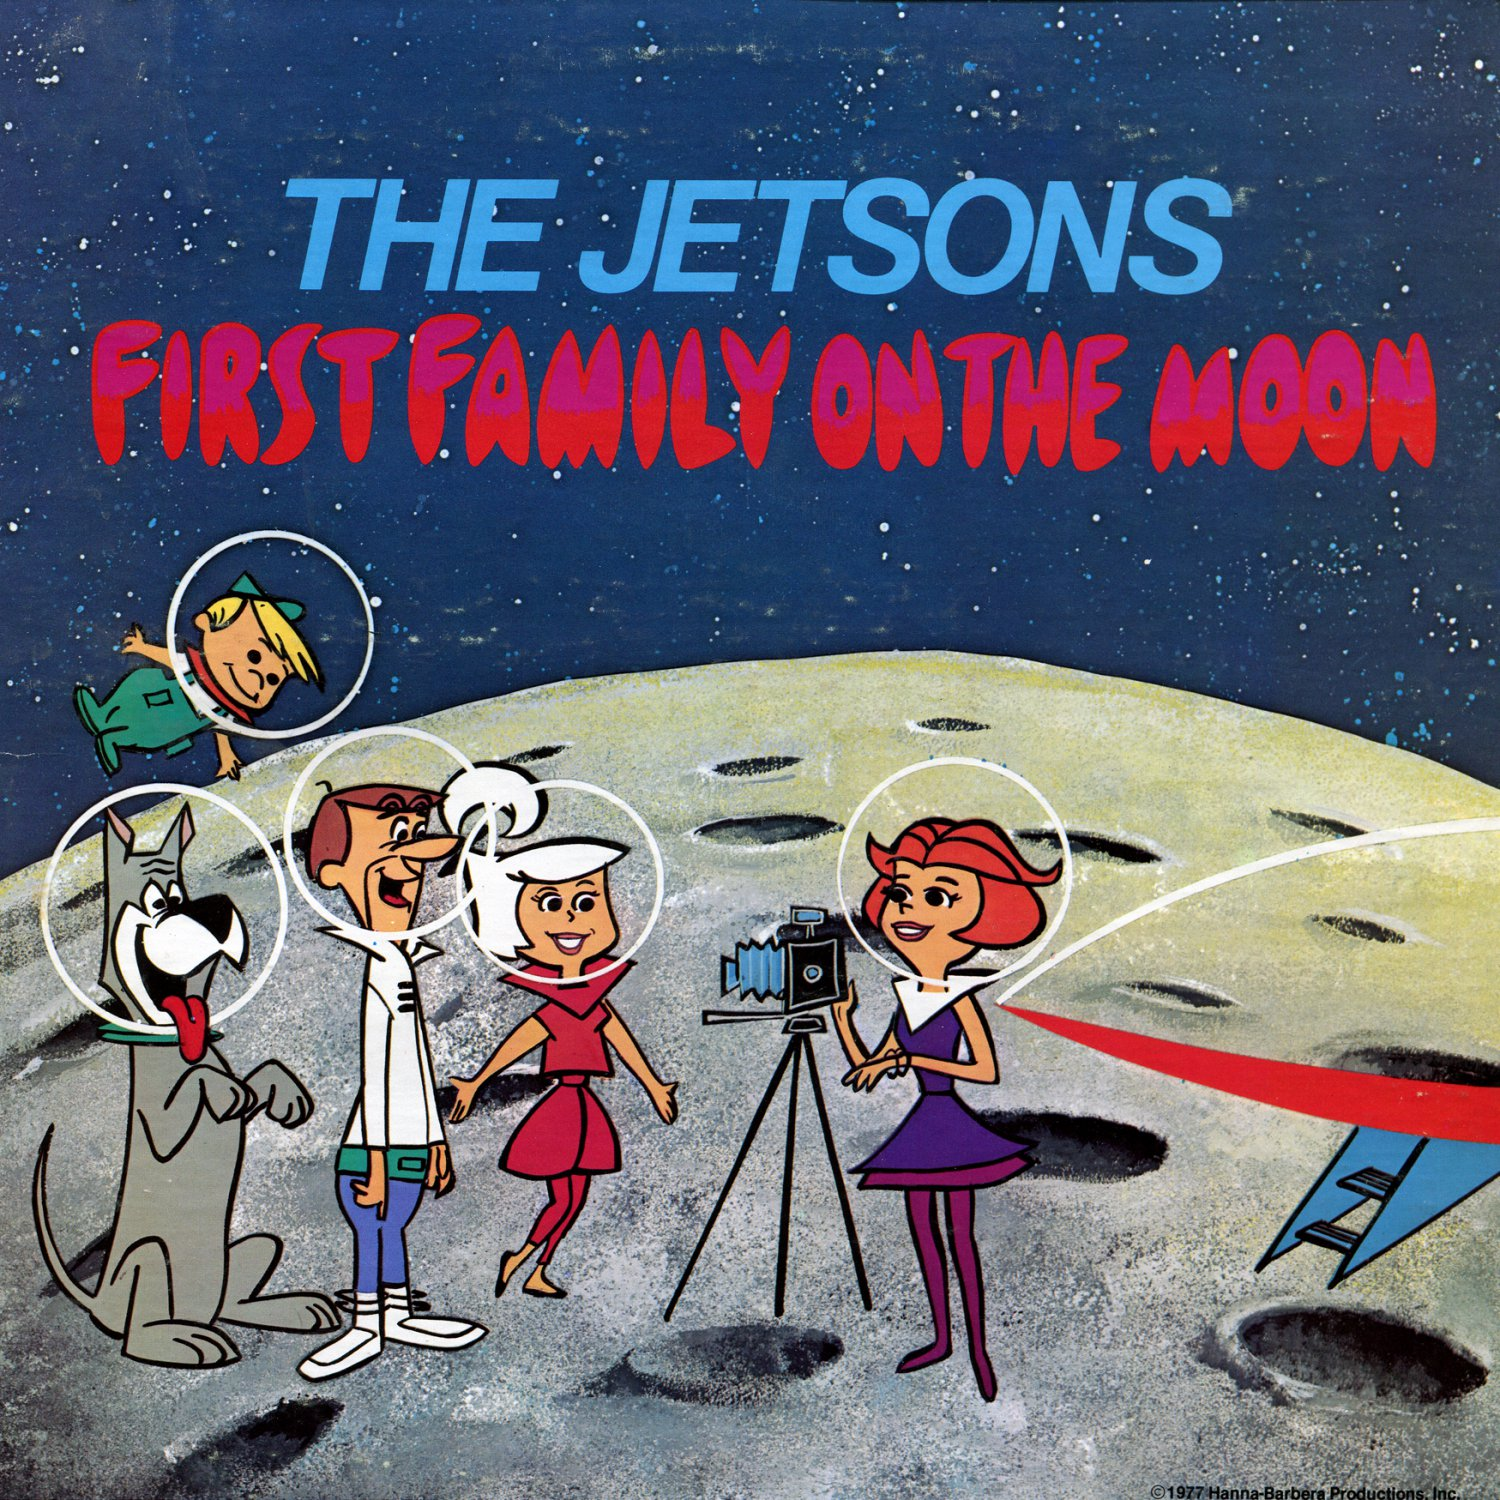 The Jetsons - First Family On The Moon, Hanna-Barbera Soundtrack LP/CD